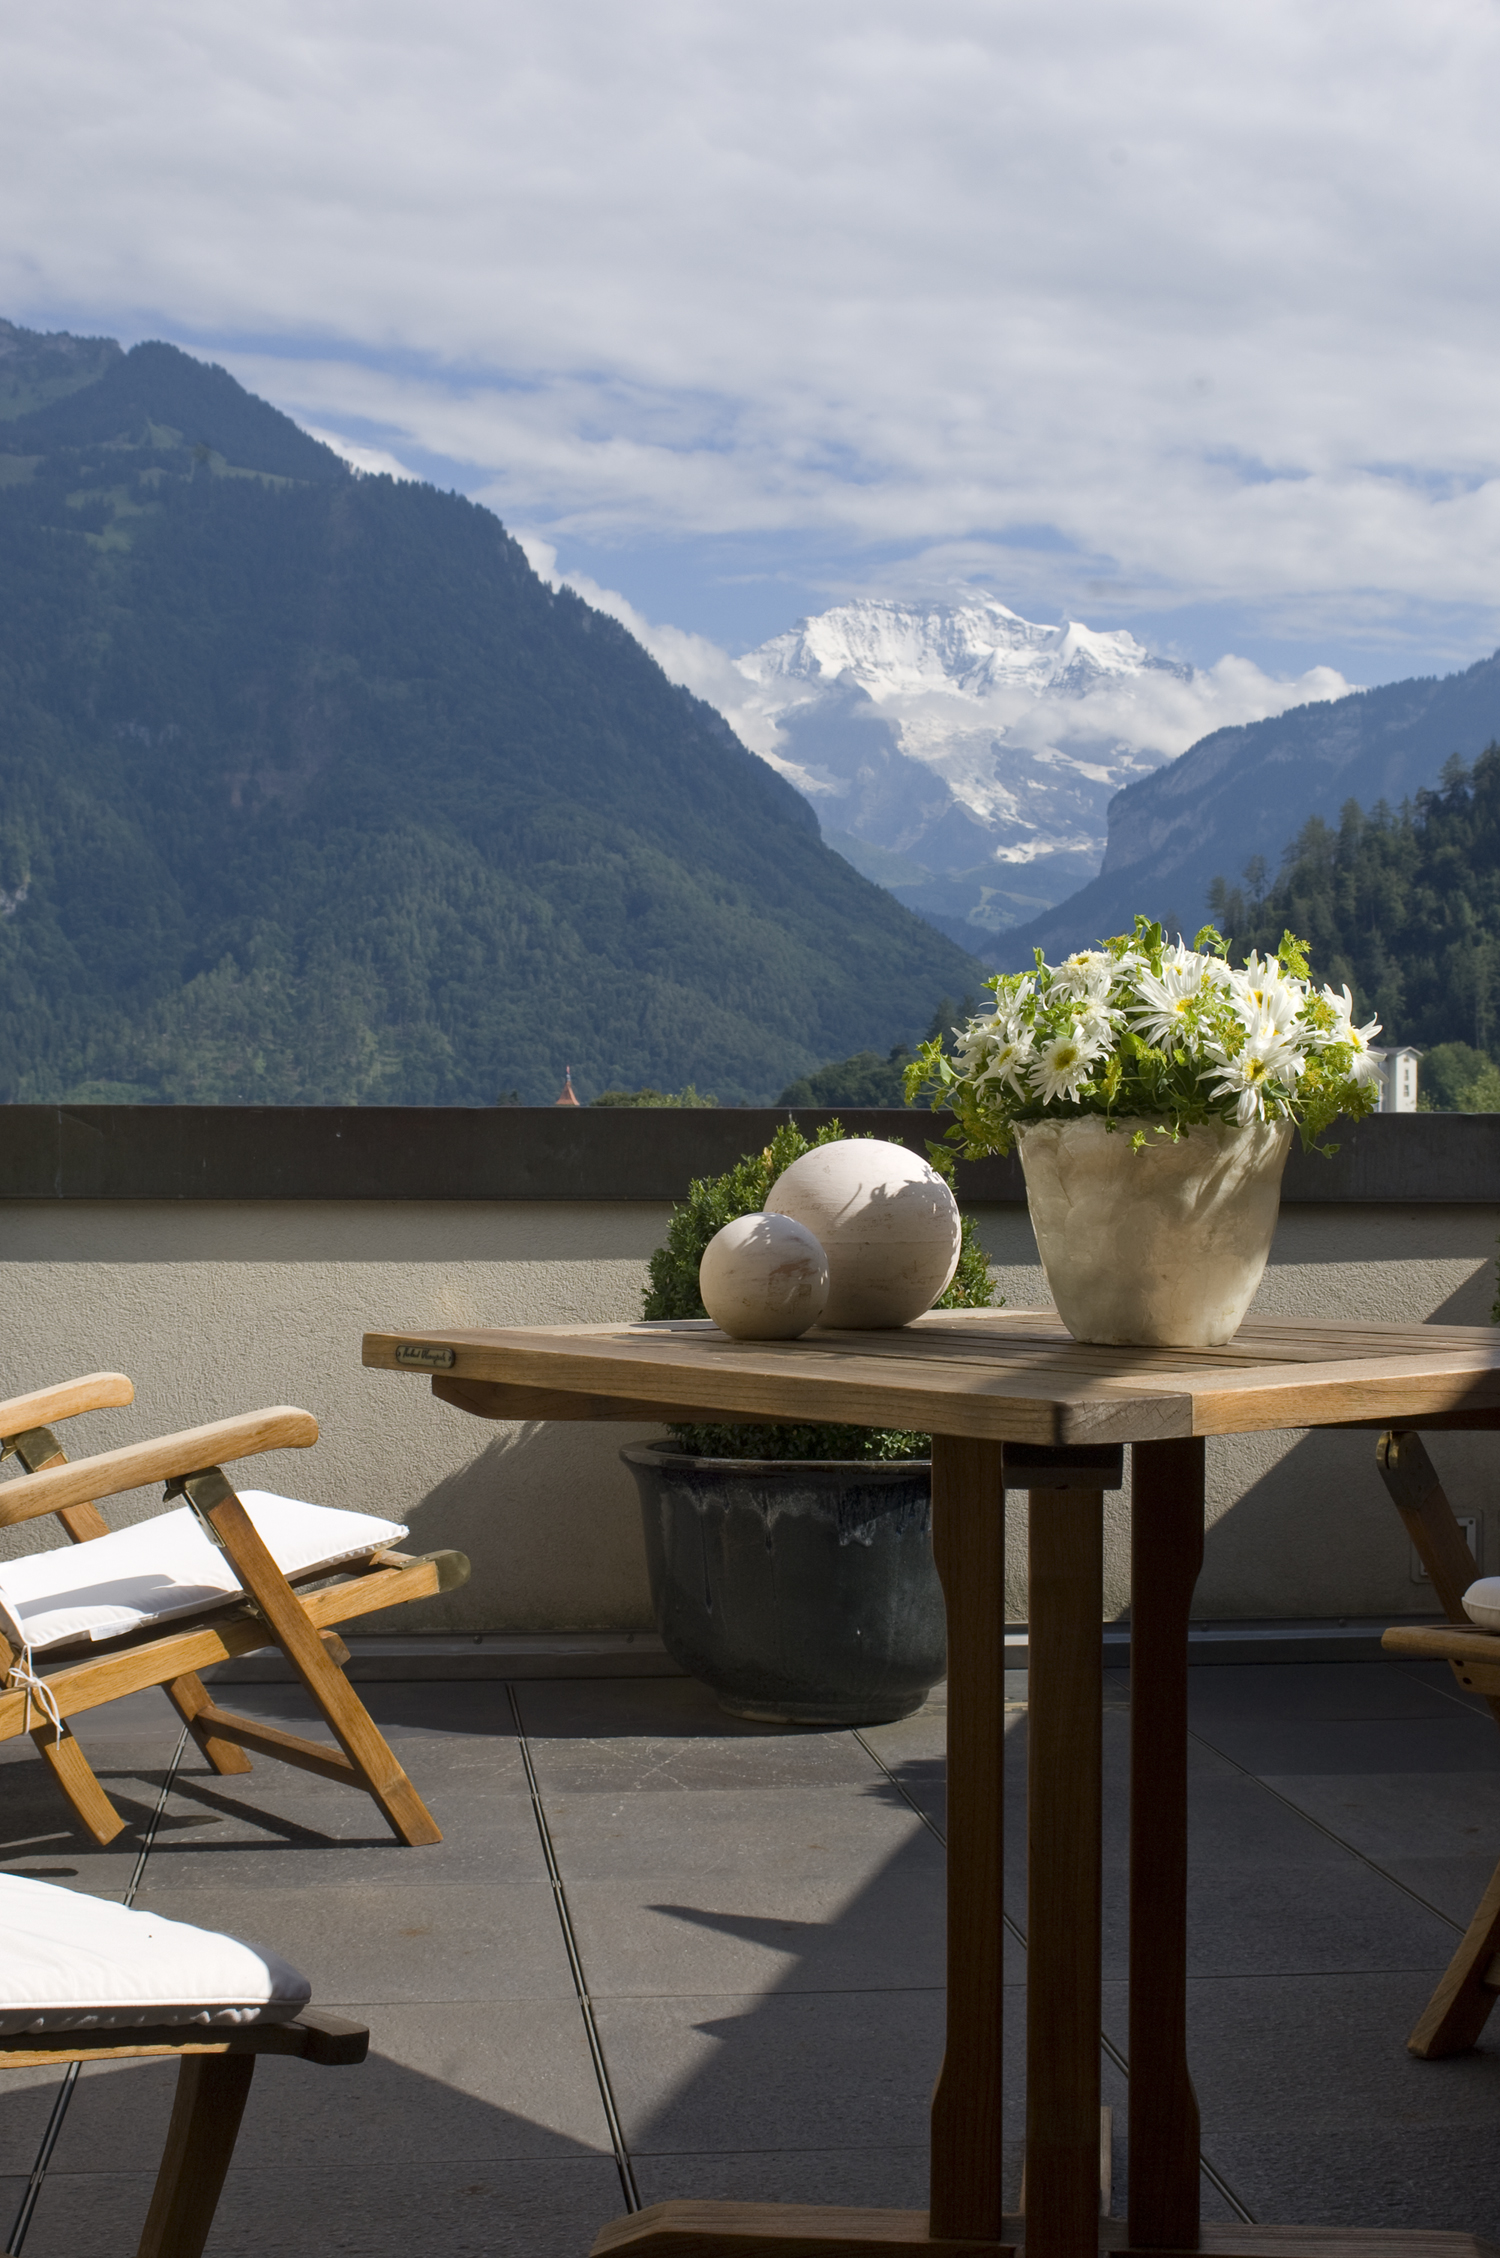 A view of the Junfrau from a terrace at the Victoria-Jungfrau.